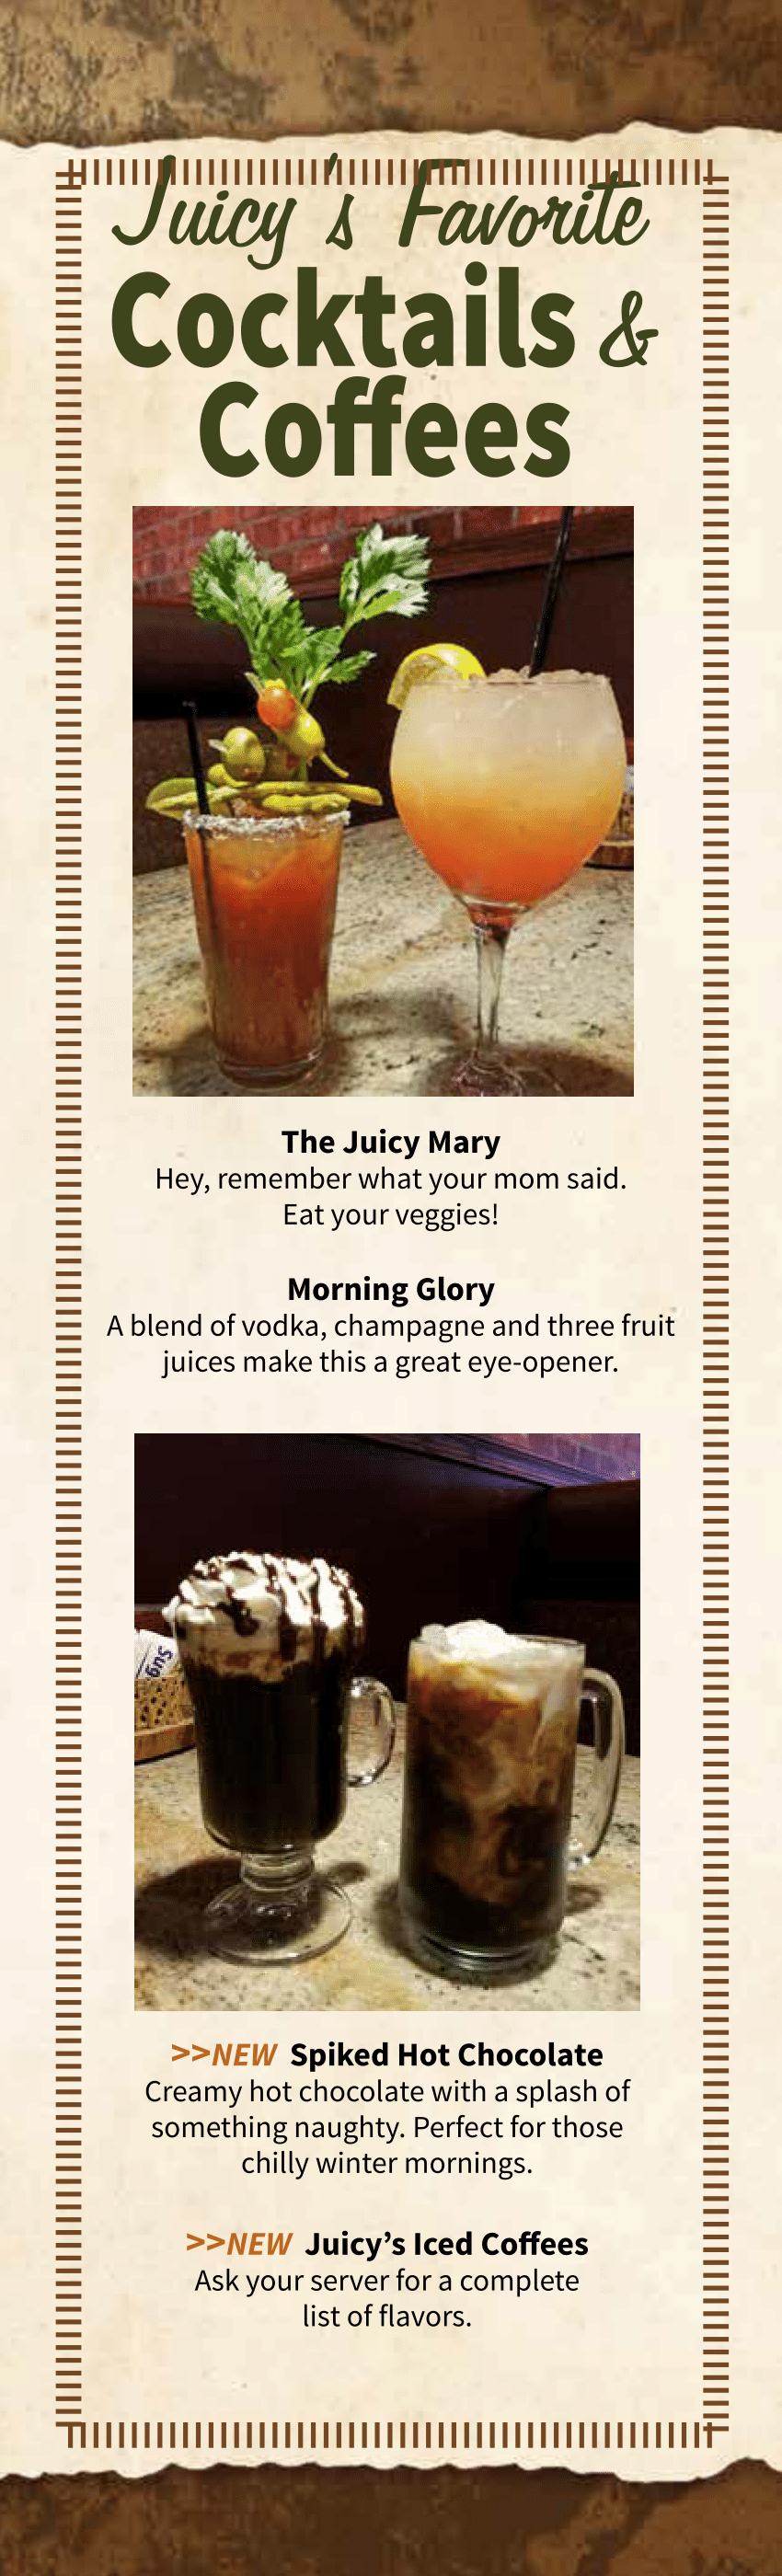 Juicy's New Menu Inserts Feb 2017-1.png